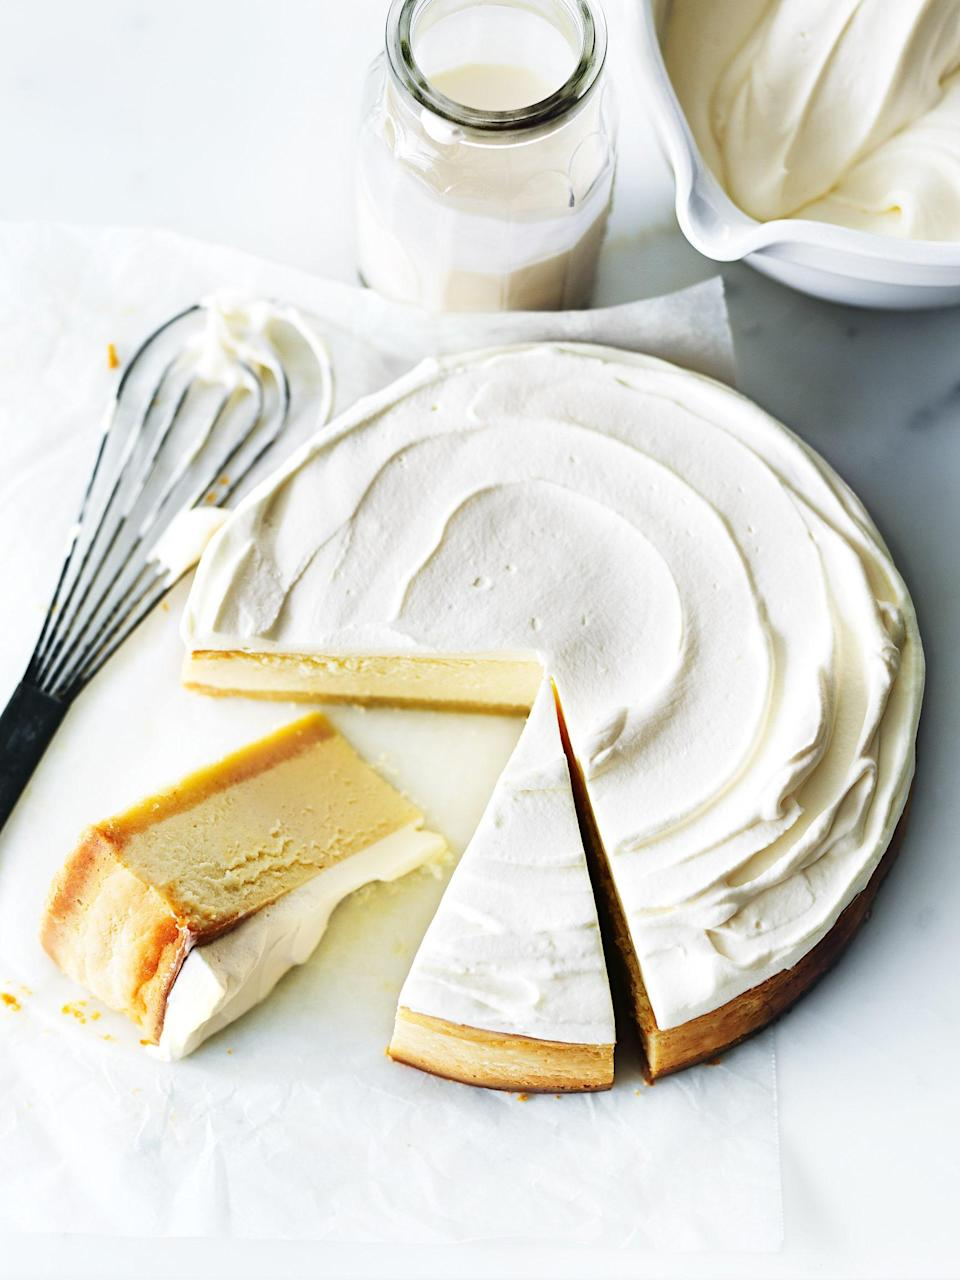 """You can't beat the classics when it comes to desserts, and this is one of the best. Zesty, creamy and light-as-air, this cake is completely heavenly. <a href=""""https://www.epicurious.com/recipes/food/views/classic-lemon-cheesecake-56390075?mbid=synd_yahoo_rss"""" rel=""""nofollow noopener"""" target=""""_blank"""" data-ylk=""""slk:See recipe."""" class=""""link rapid-noclick-resp"""">See recipe.</a>"""